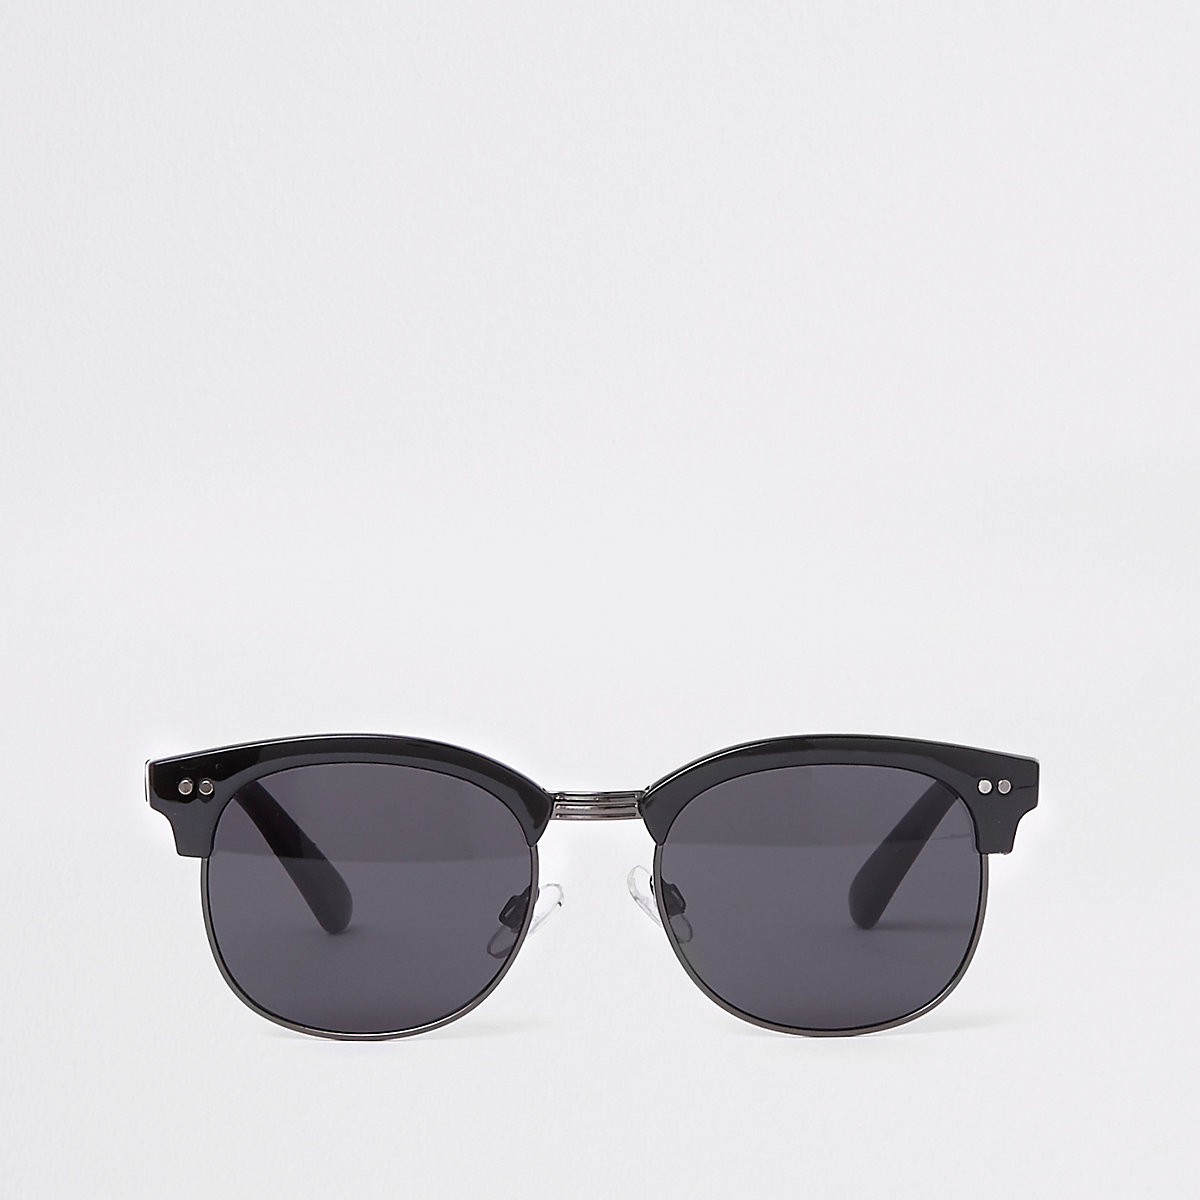 Black tinted lens retro frame sunglasses